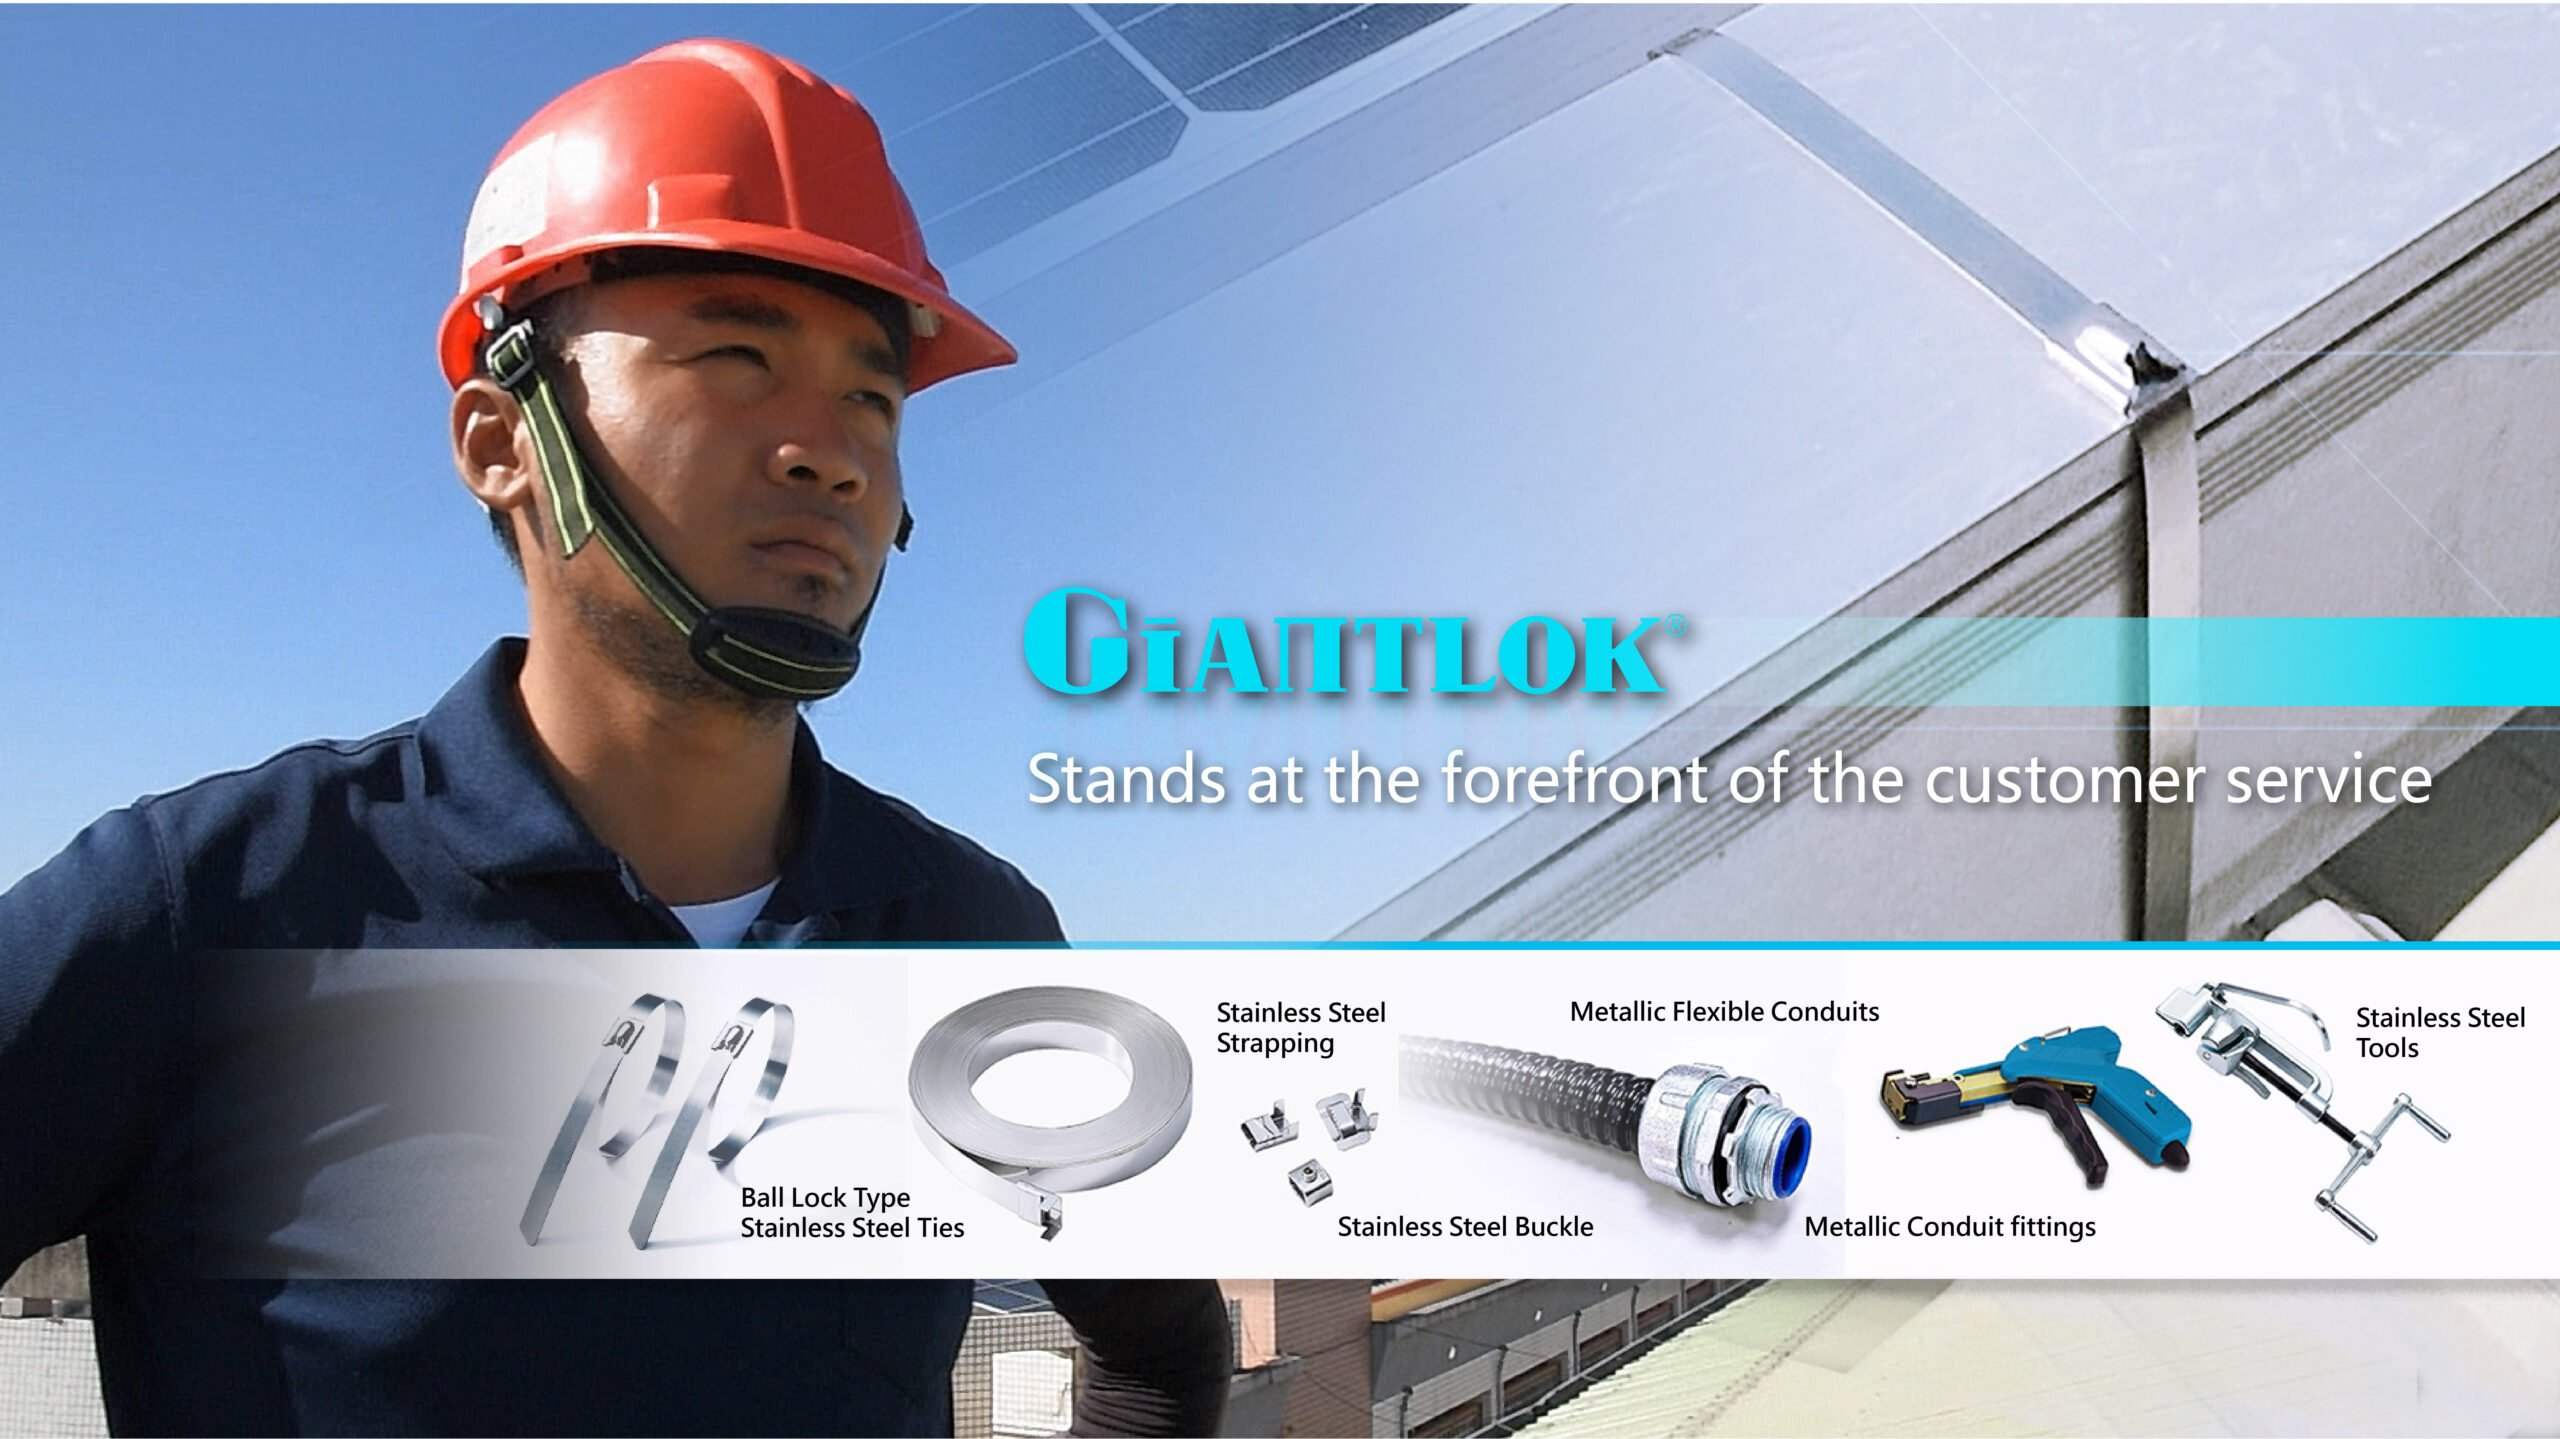 Giantlok stands at the forefront of the customer service